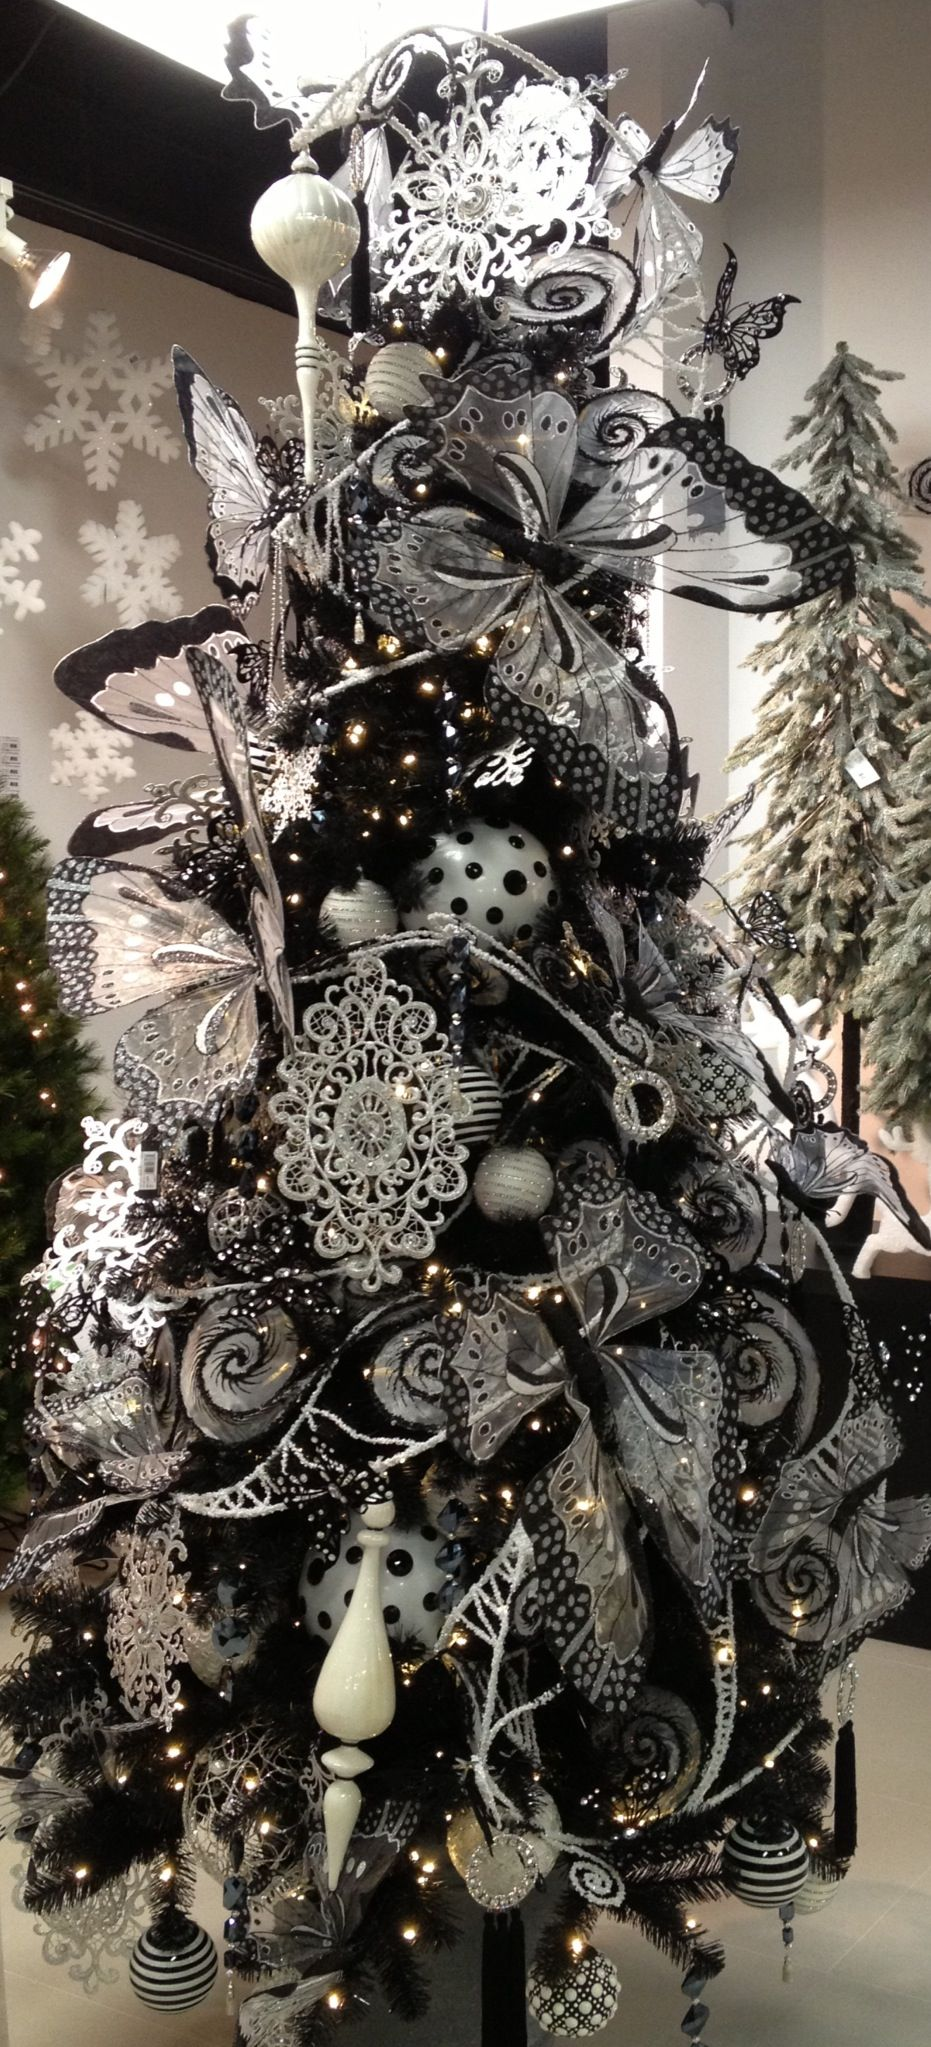 Pin By Larissa Mara On Christmas Black Christmas Trees Unique Christmas Trees Black Christmas Tree Decorations